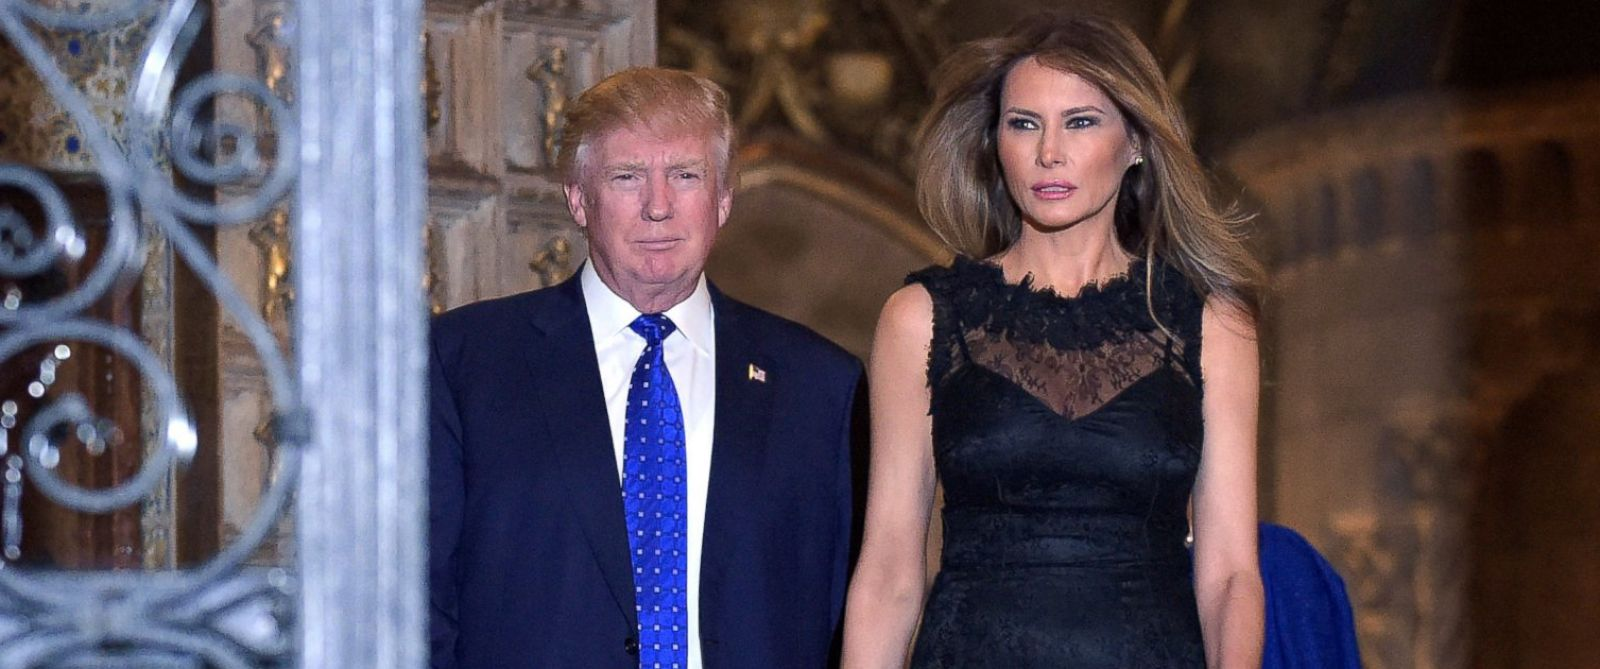 PHOTO: President Donald Trump and first lady Melania Trump are photographed at Mar-a-Lago in Palm Beach, Fla., Feb. 11, 2017.